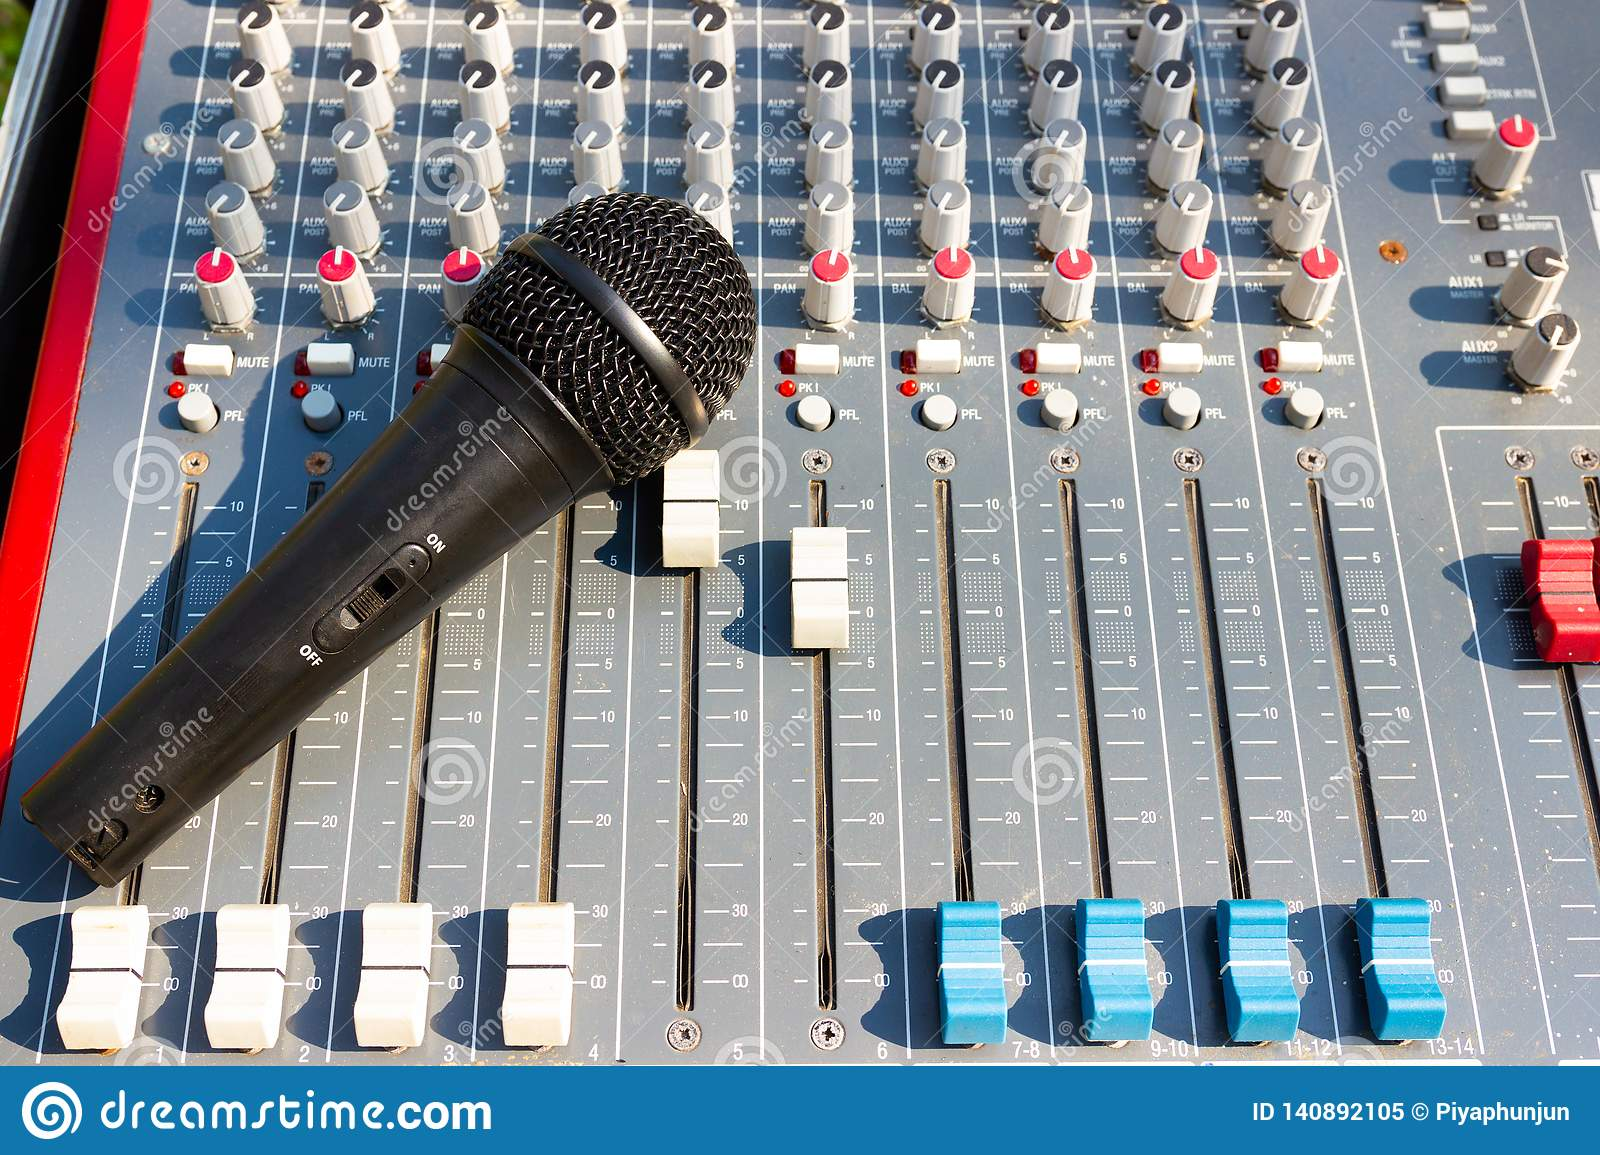 Microphone on Mixing Console of a big HiFi system, The audio equipment and control panel